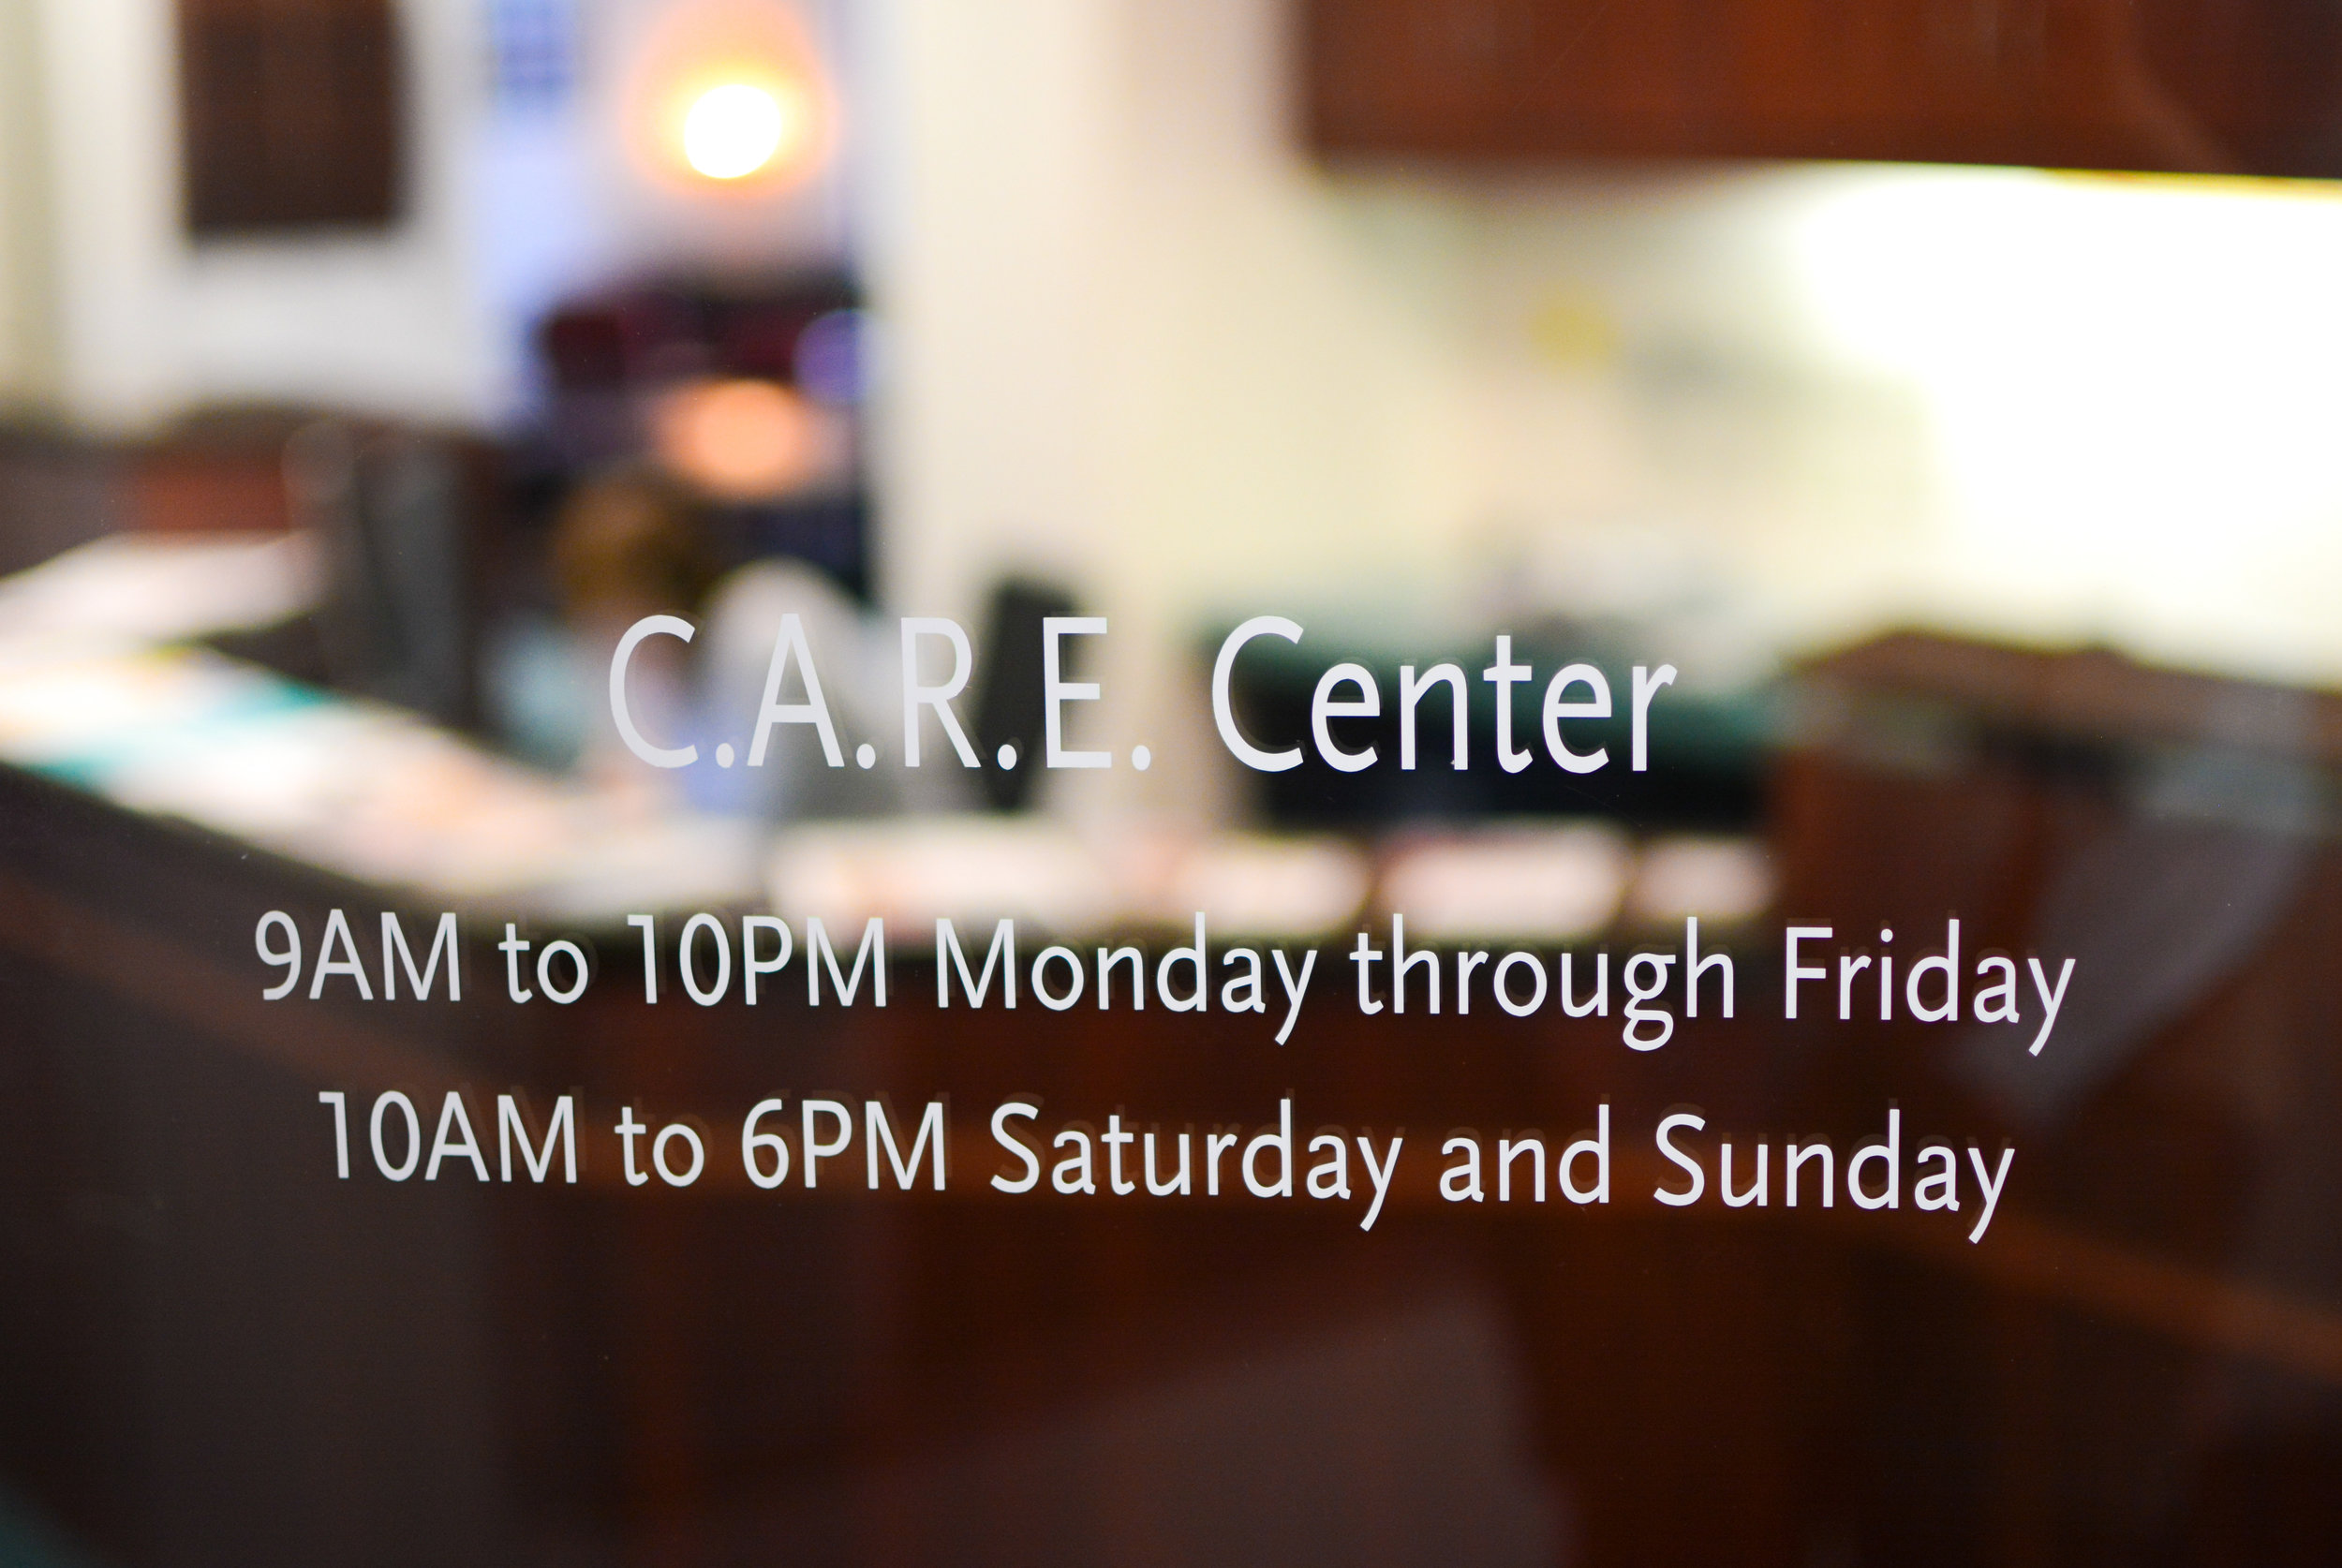 CARE-Center-Sign-Edit-1-of-1.jpg